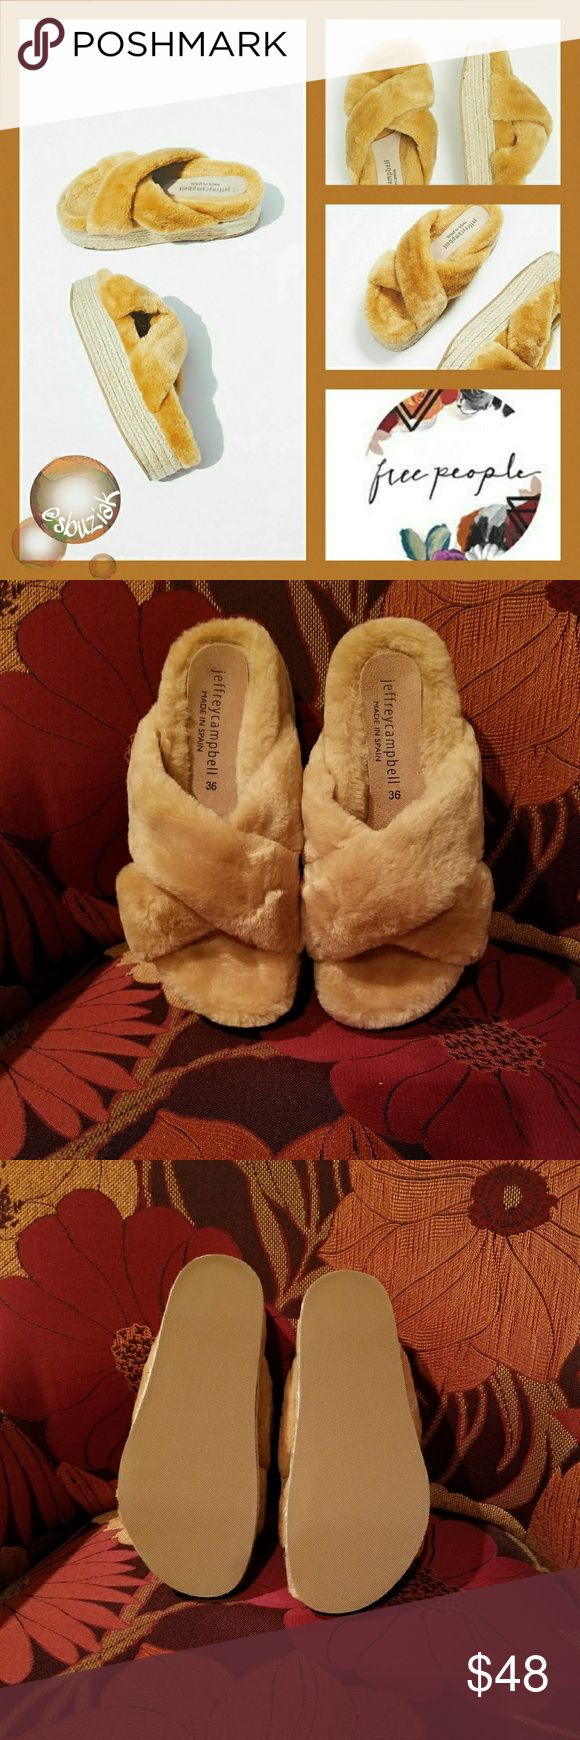 Jeffrey Campbell x FP Faux Fur Espadrille Slides Jeffrey Campbell for Free People Faux Fur Espadrille Platform Slides.  Faux Fur Upper with a traditional Espadrille Platform and durable rubber soles.  Height is approximately 1.5 inches. New with tags and box. Jeffrey Campbell Shoes Espadrilles